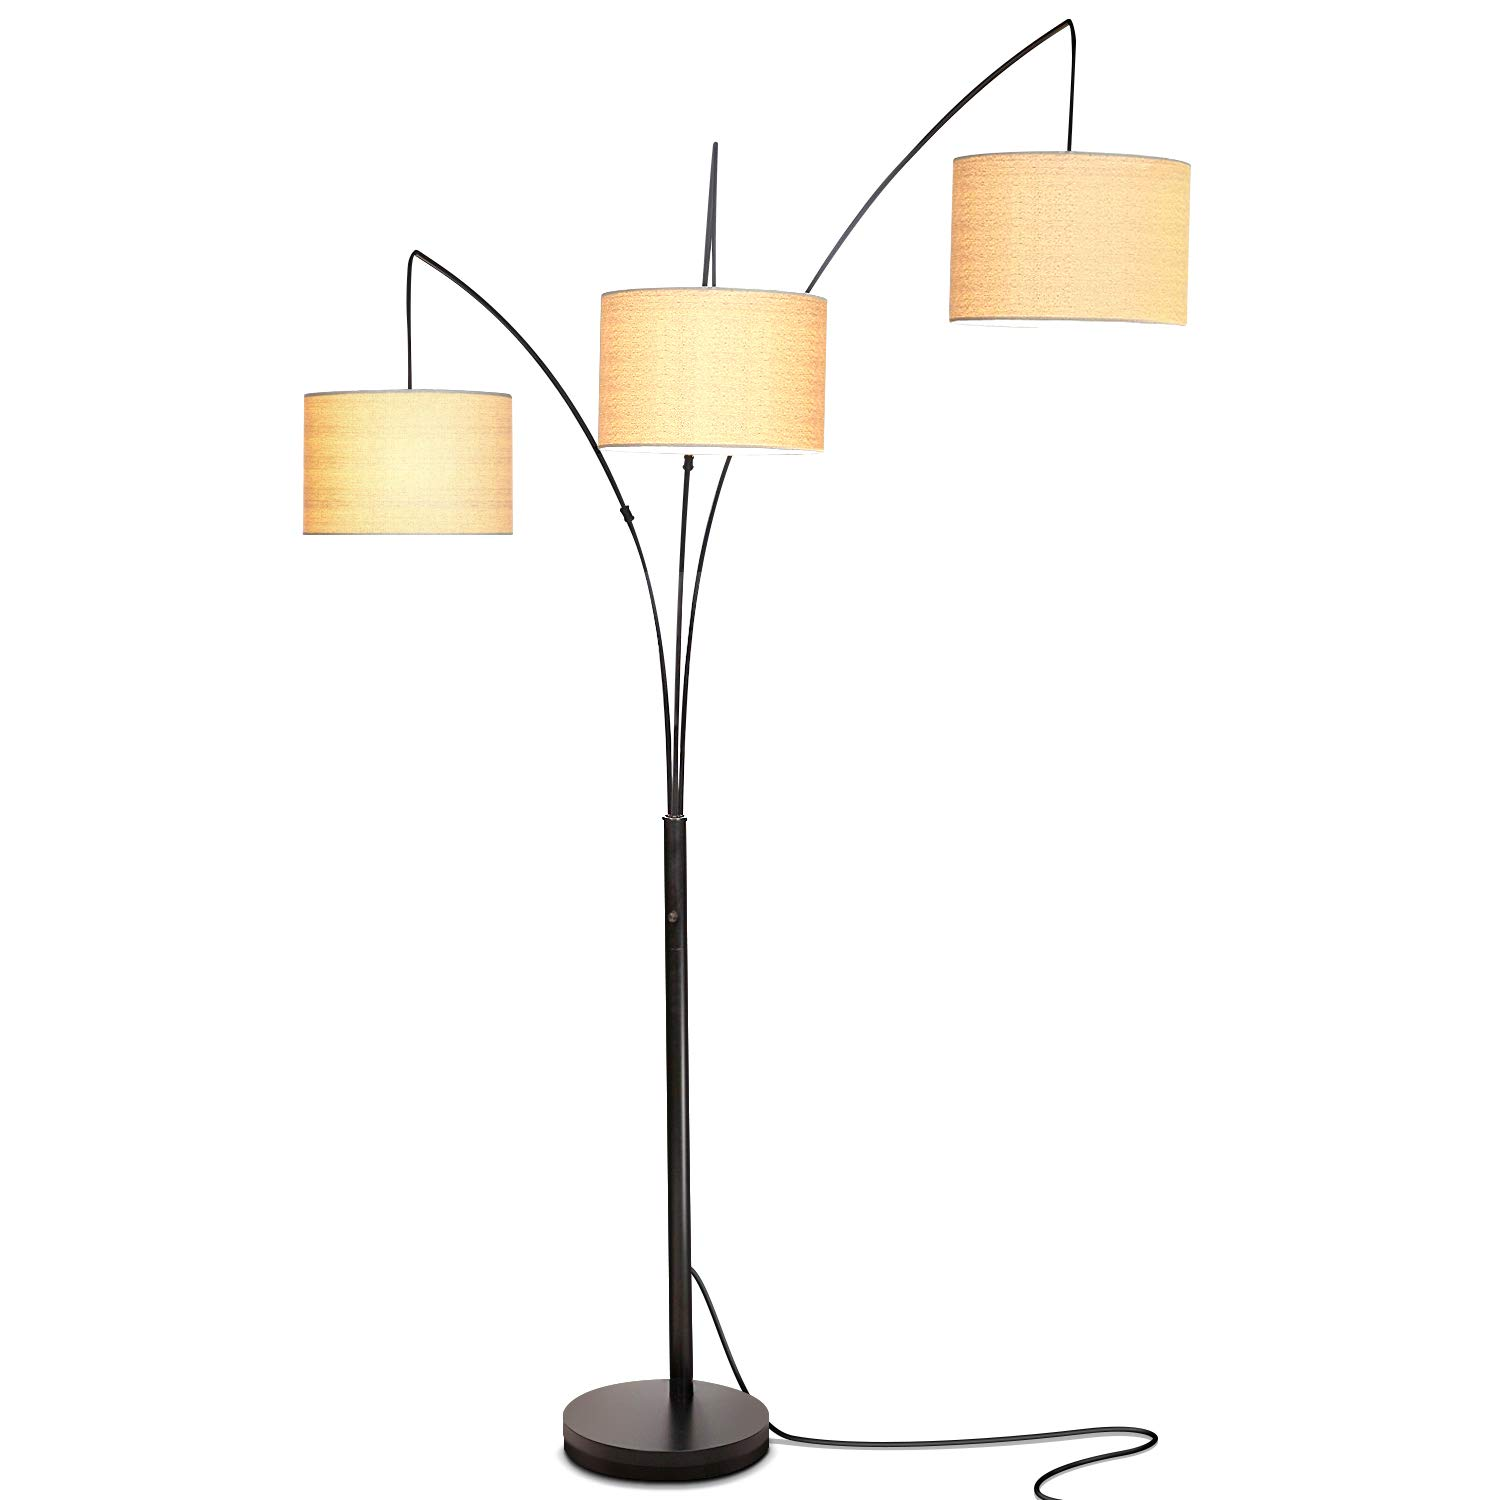 Brightech Trilage - Modern LED Arc Floor Lamp with Marble Base - I really can't say enough about how much we love this lamp. The base is so solid. It's real marble and has such great black and white detail. The shades are so lightweight so you don't feel like the lamp is constantly falling. And it's a three way lamp, so you can choose your brightness. You can use one, two or all three lights. Can't recommend it enough.